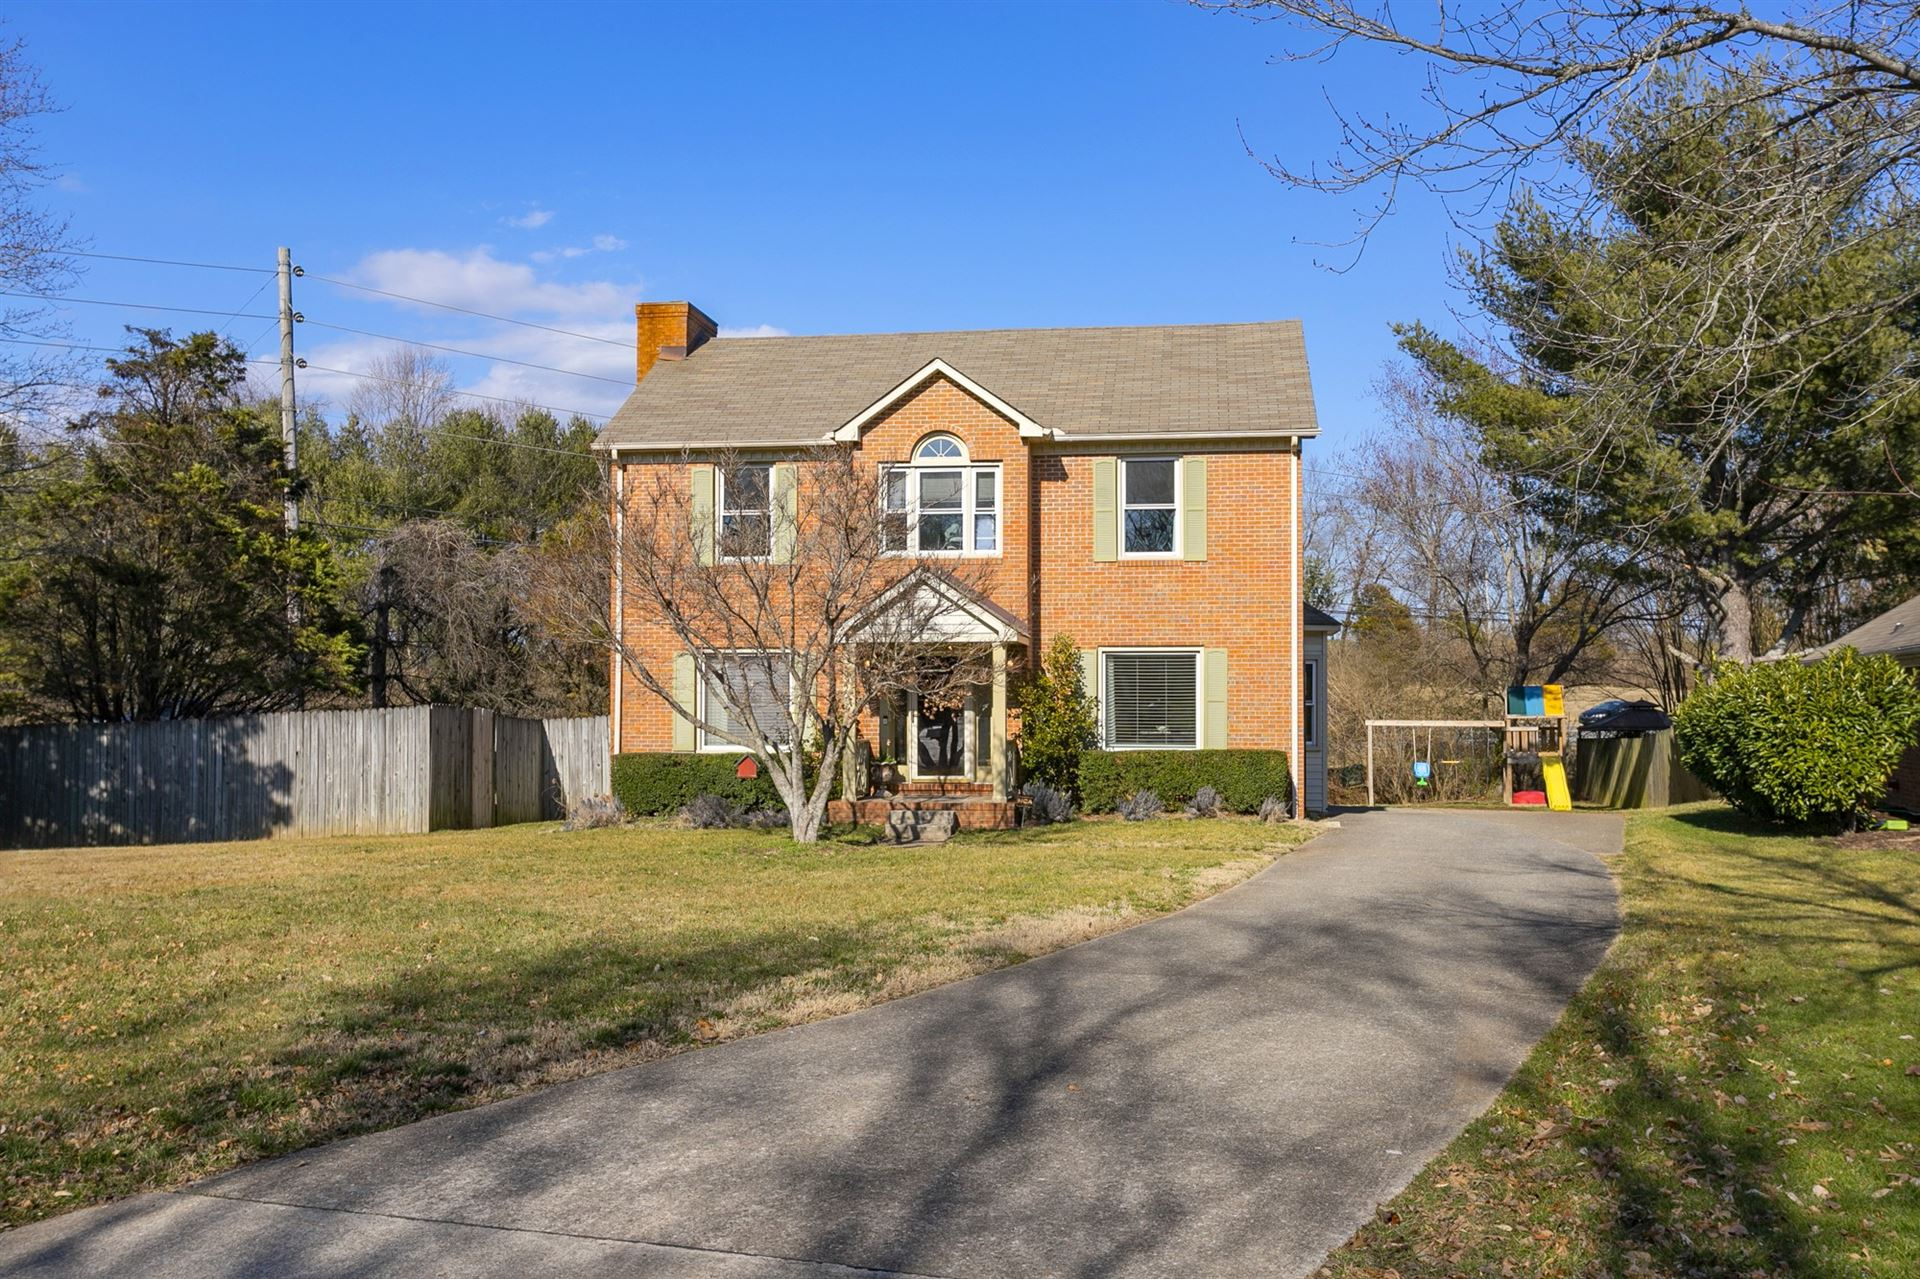 1188 Hunters Chase Dr, Franklin, TN 37064 - MLS#: 2232603